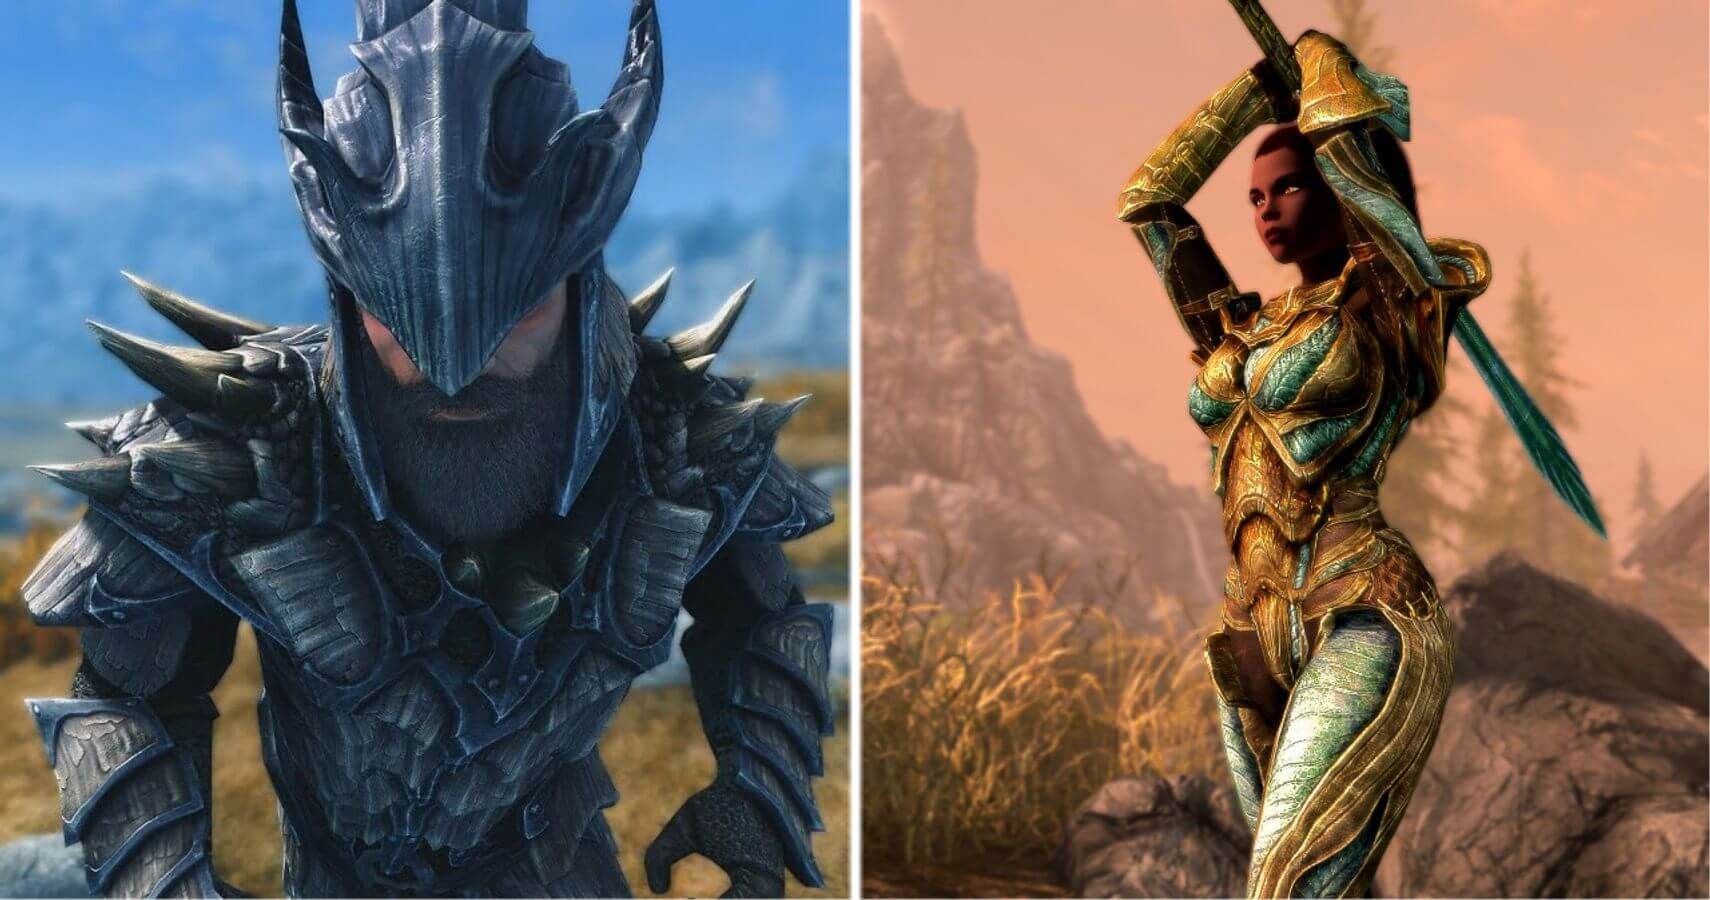 18 Best Light Armor In Skyrim Page 2 My Otaku World White dragons love vertical heights in their caverns, flying up to the ceiling to latch on like bats or. my otaku world